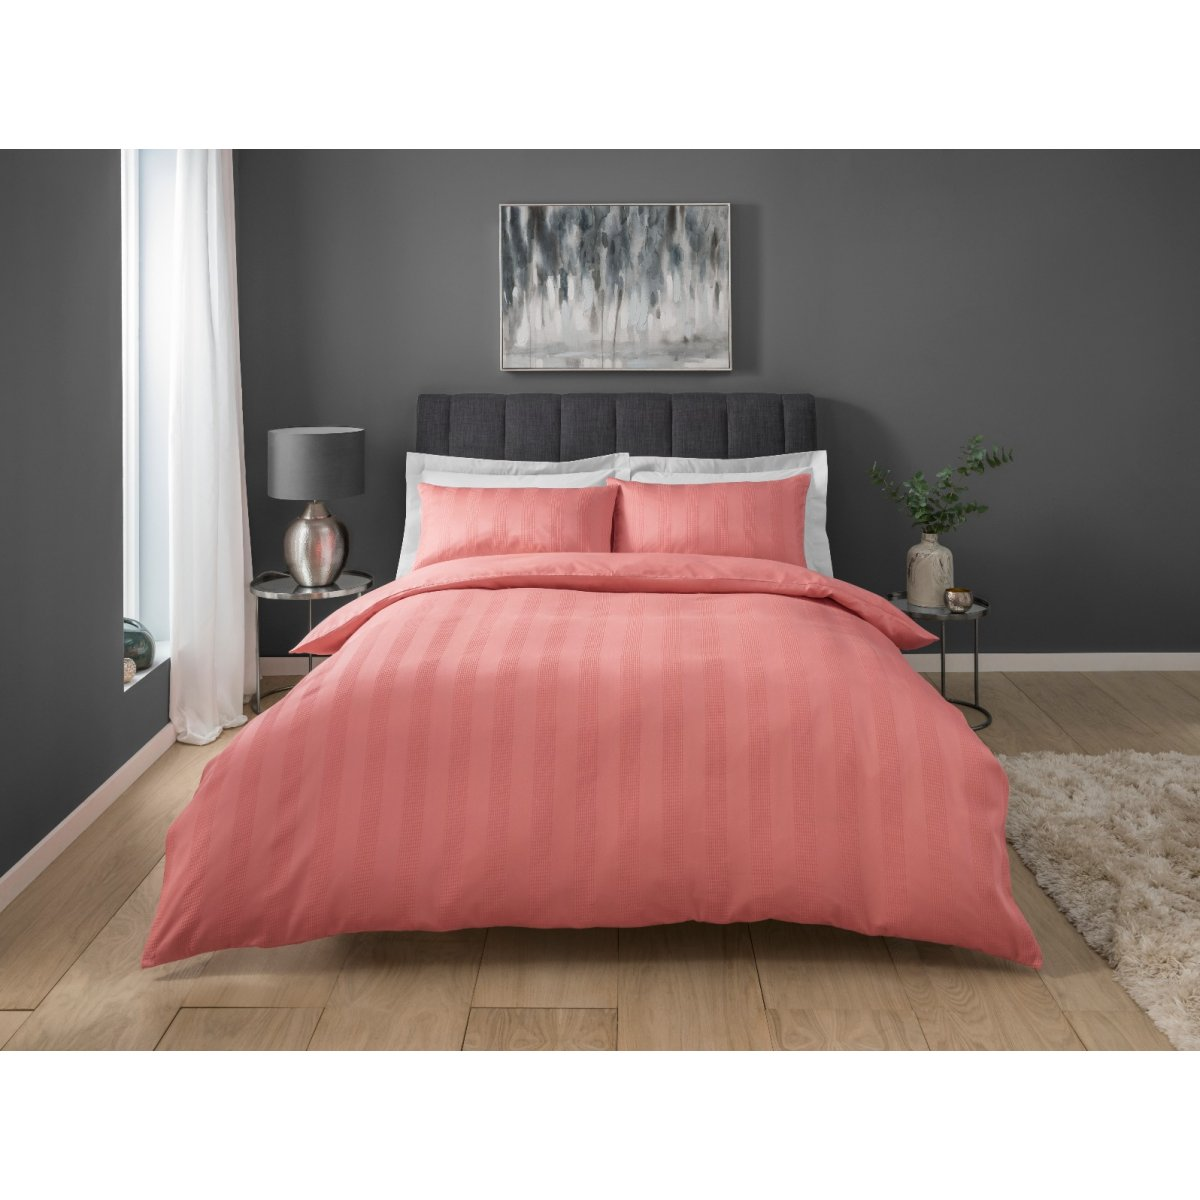 Stripe Waffle Coral Bedding - Duvet Cover and Pillowcase Set